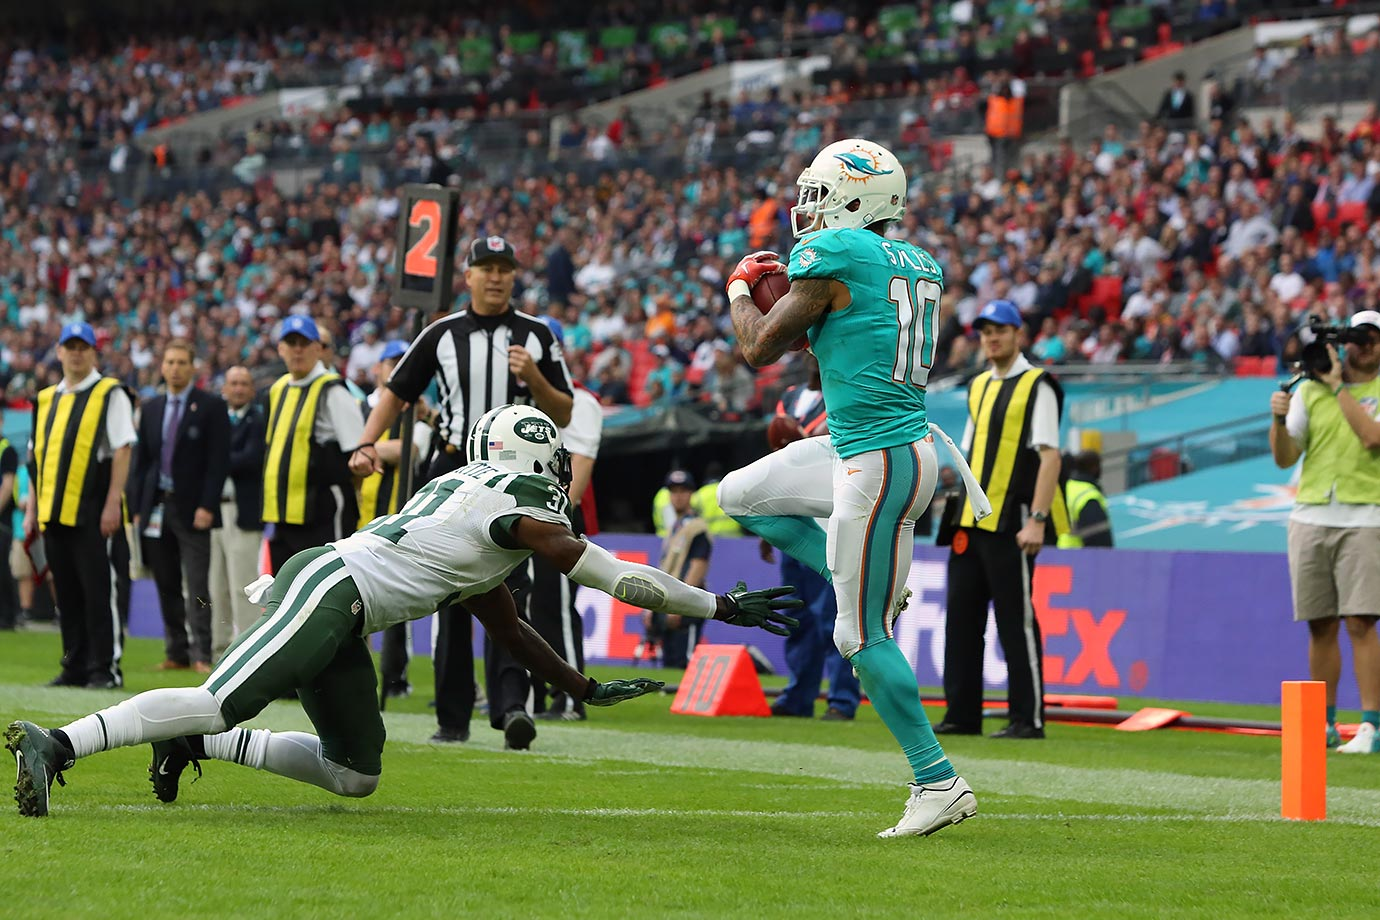 In switching teams from New Orleans to Miami, Stills has gone from averaging 4.2 receptions per game in 2014 to averaging 1.7 catches this season. With only 15 targets in 2015, we don't have much data to draw sweeping conclusions from how the transition has affected his efficiency. But after Stills racked up 931 receiving yards with a ridiculous 78.8% catch rate last year, it's clear his skills are being vastly underused in South Beach. The 23-year-old has been thrown to as often as a clearly washed-up Greg Jennings.